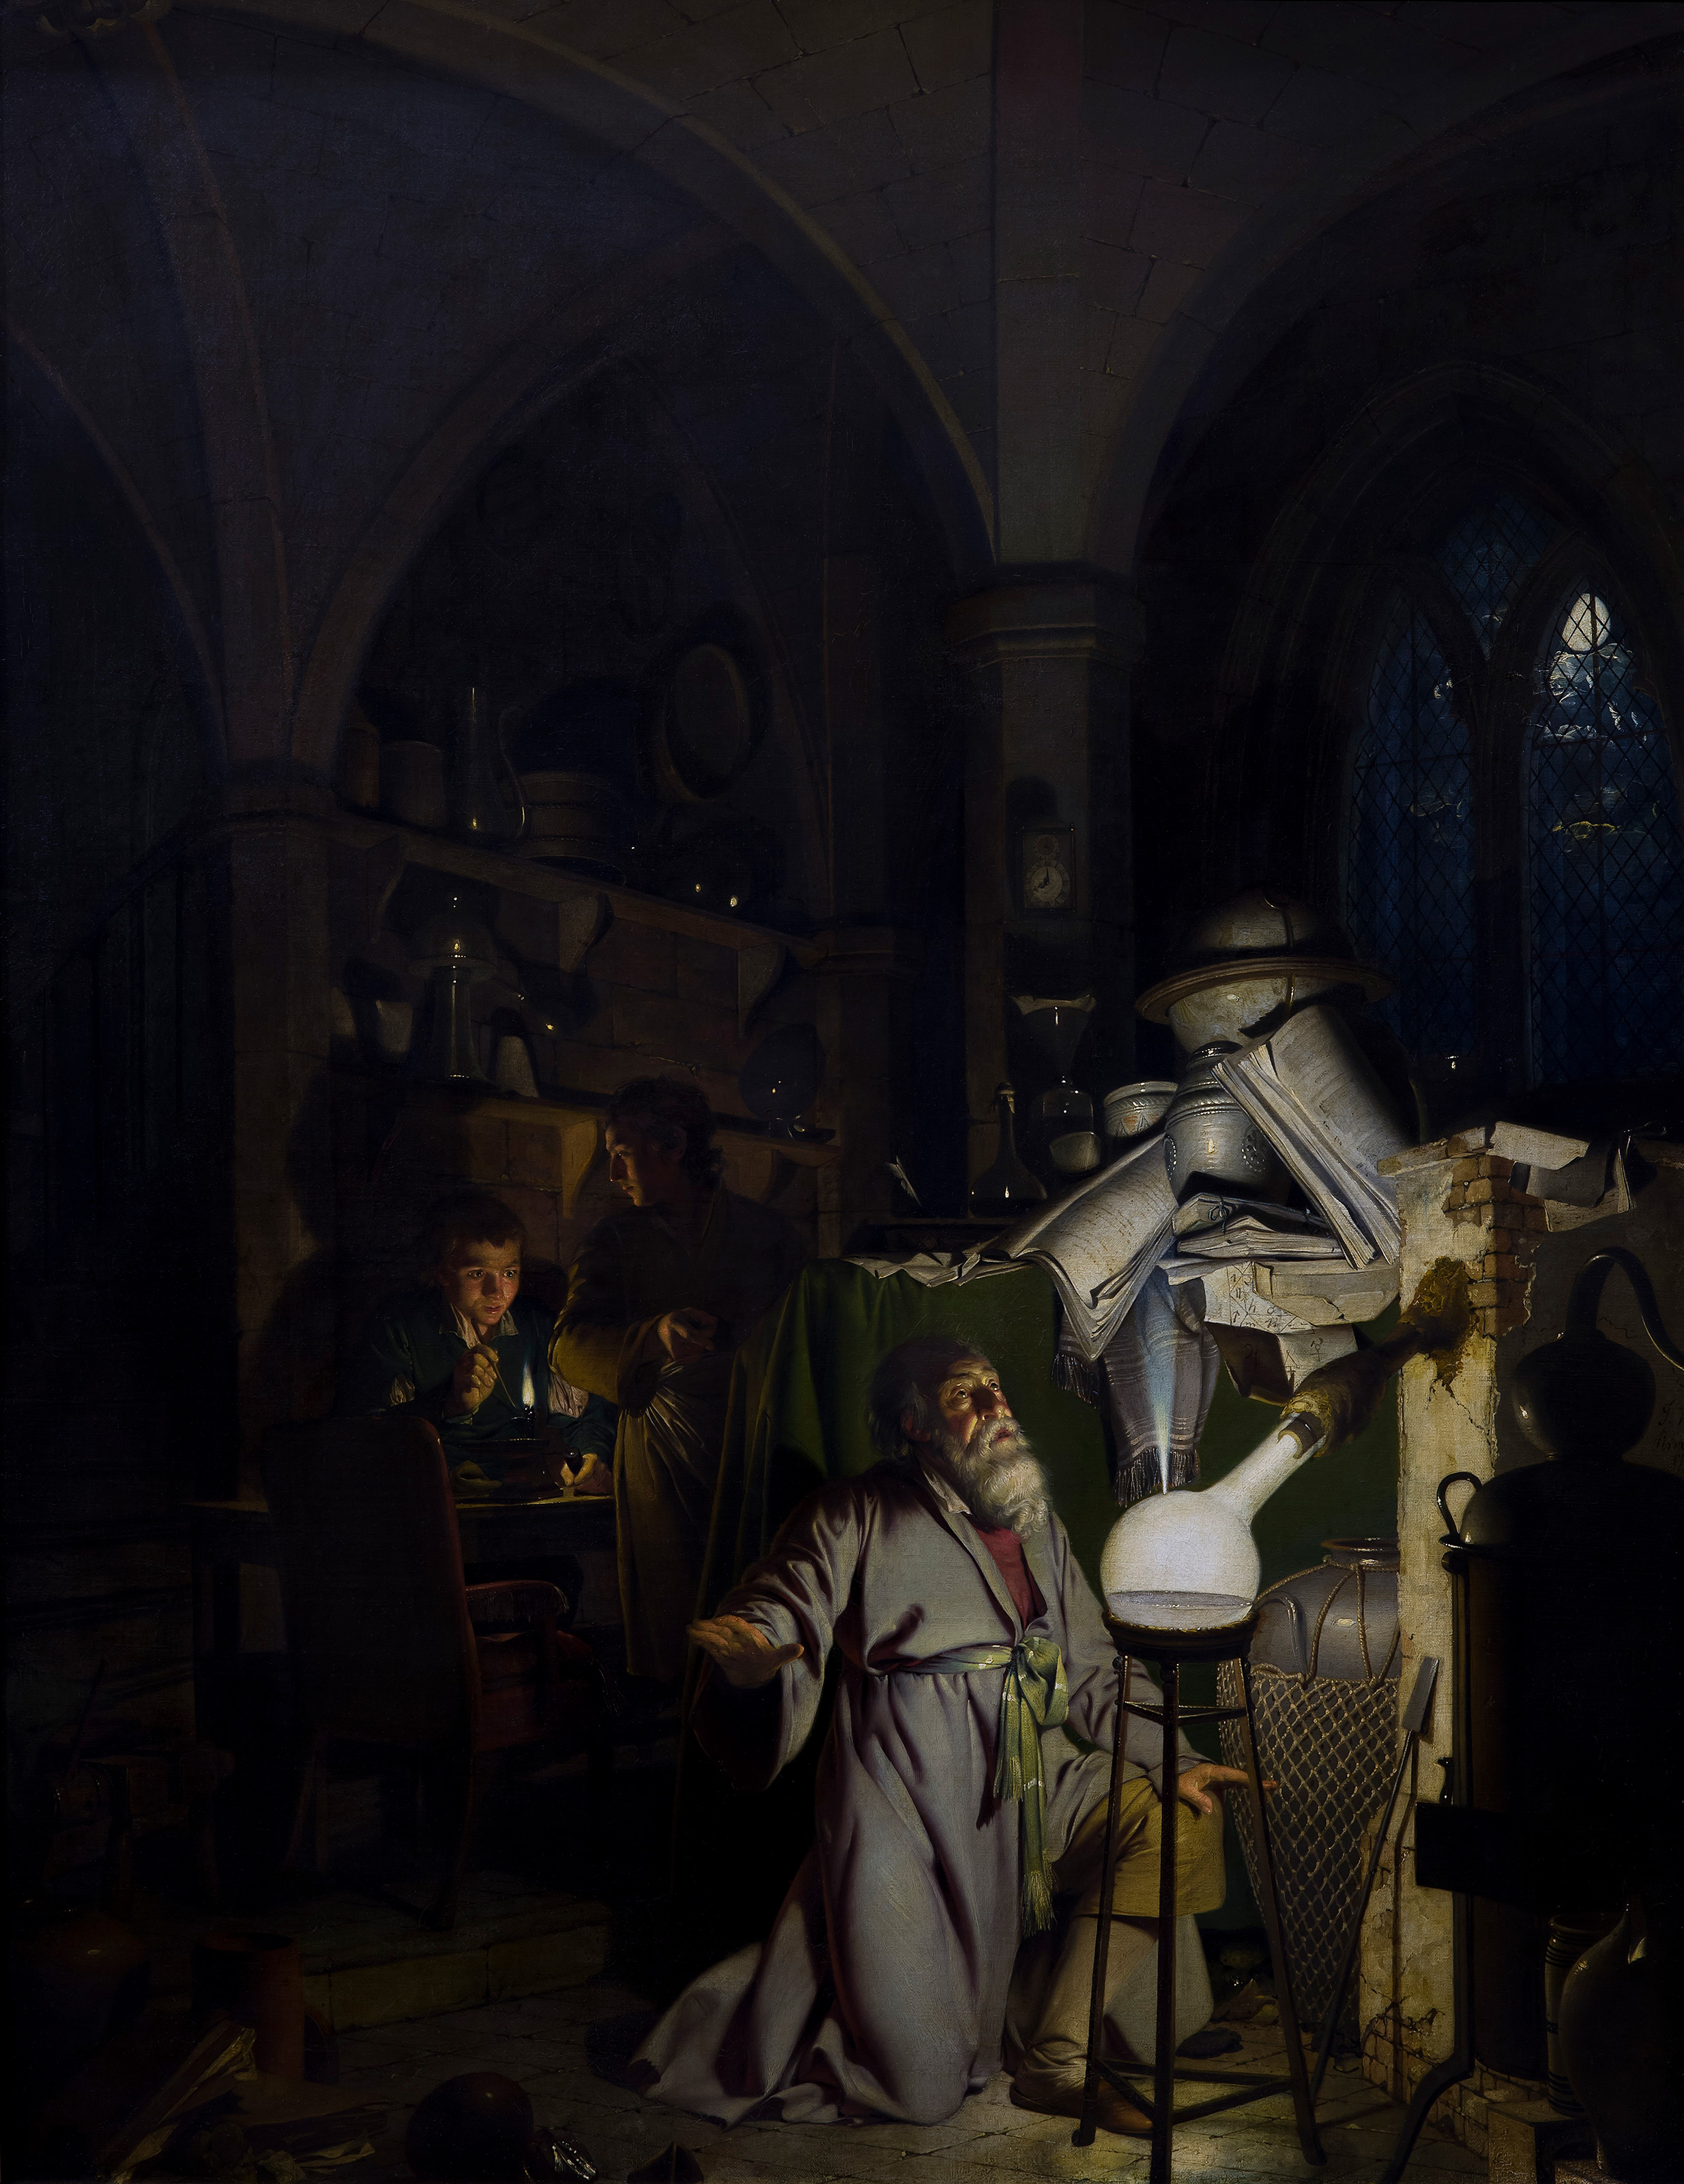 The Alchemist, 1771 — Joseph Wright of Derby